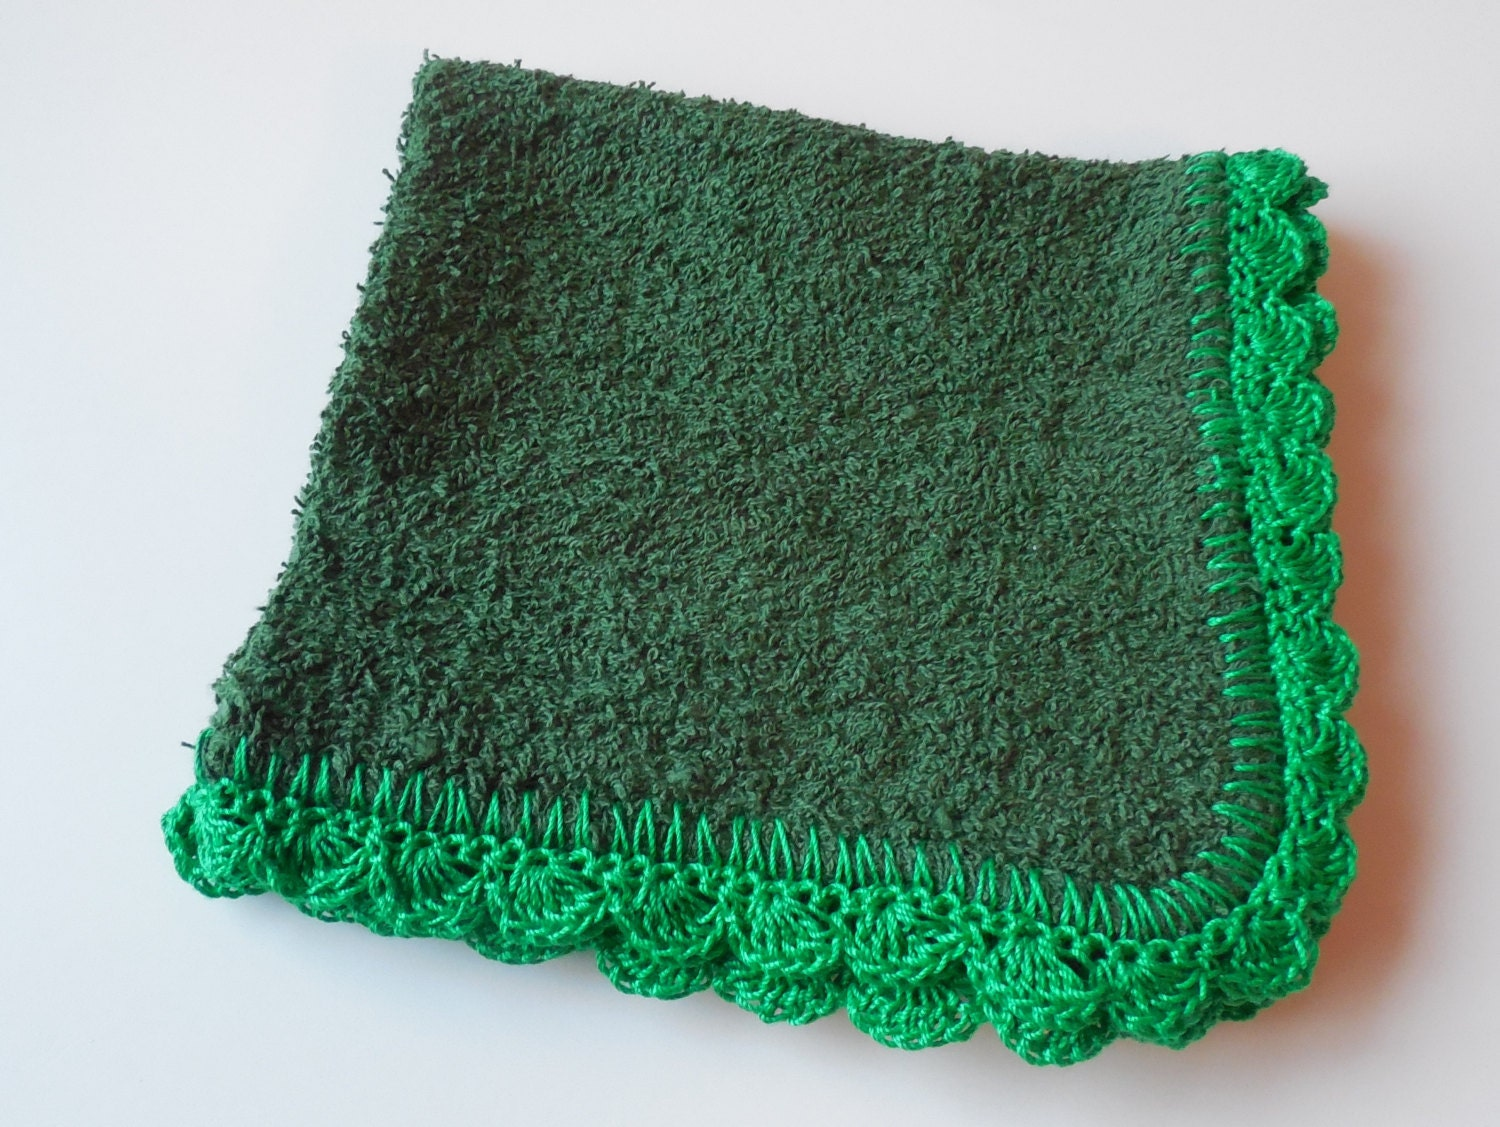 Dish Wash Cloths - Green - With Crochet Edging - ShelleysCrochetOle